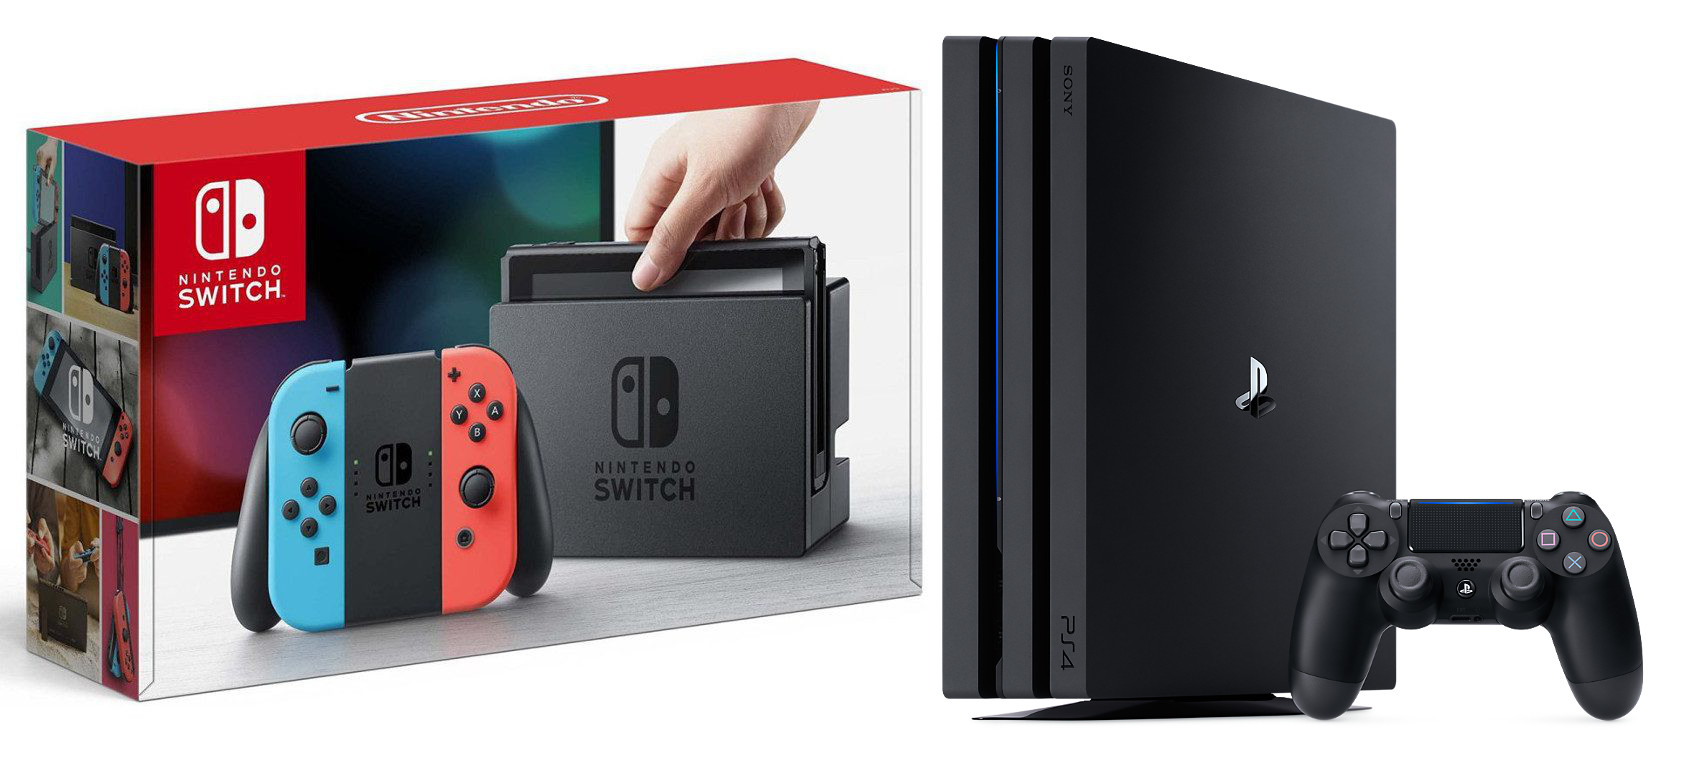 GameStop now offers up to $300 in store credit with PS4/Pro, Switch and Xbox One trade-ins